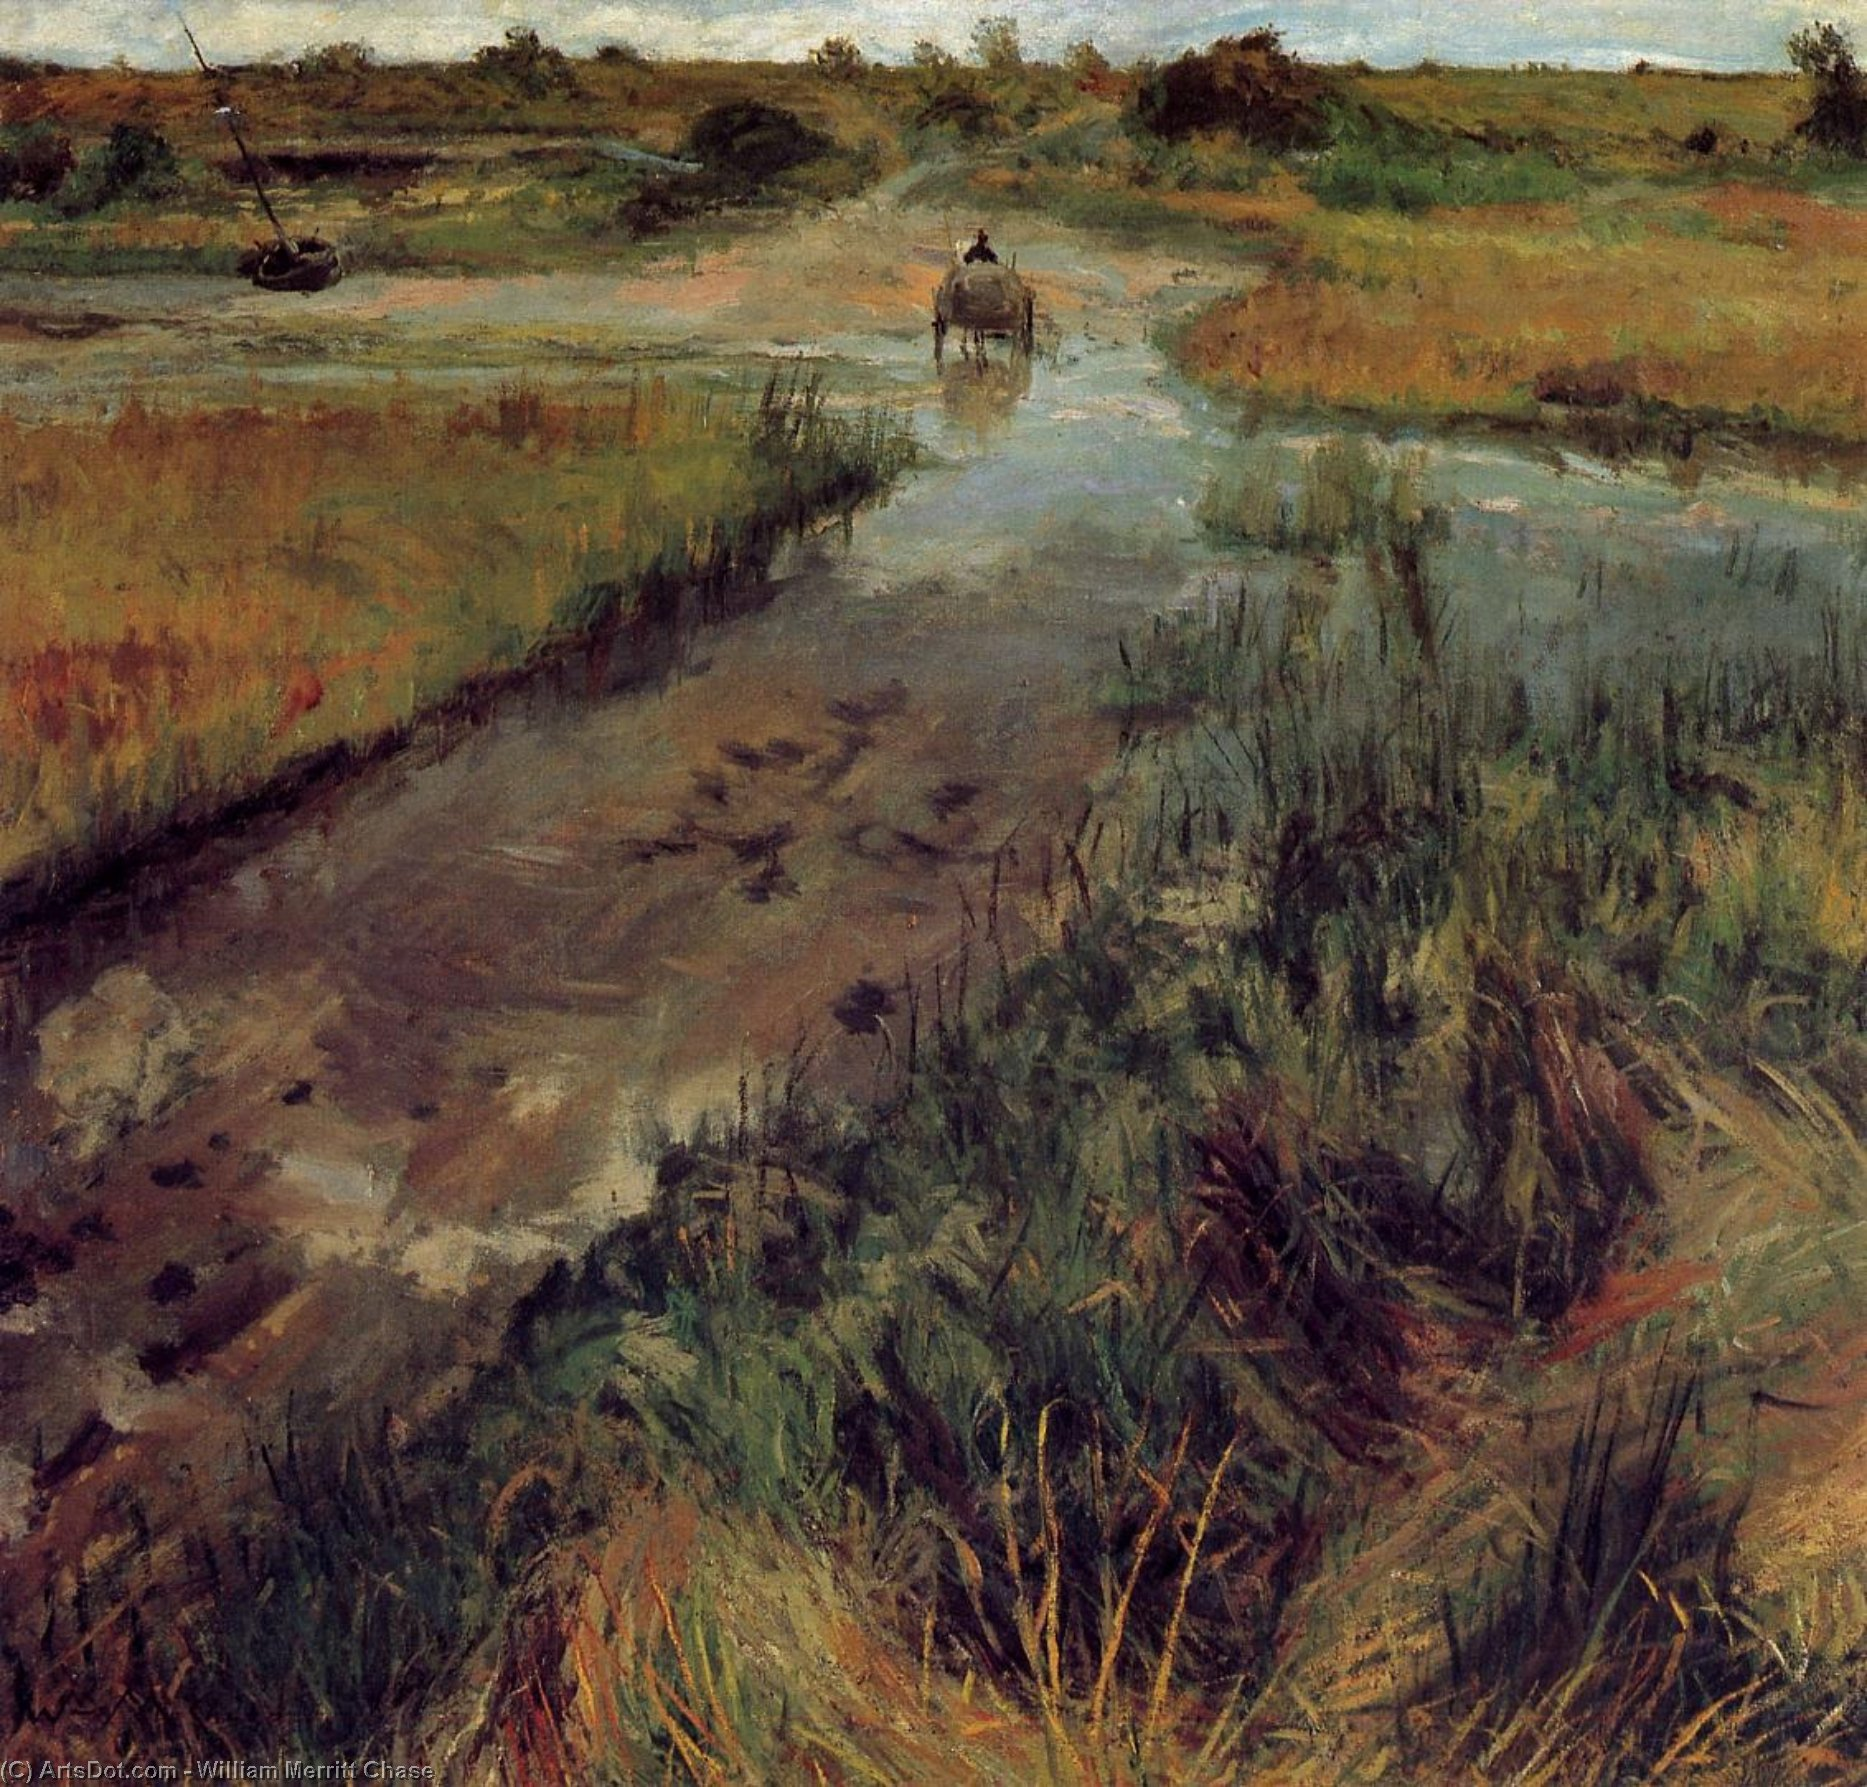 Swollen Stream at Shinnecock, Oil On Canvas by William Merritt Chase (1849-1916, United States)